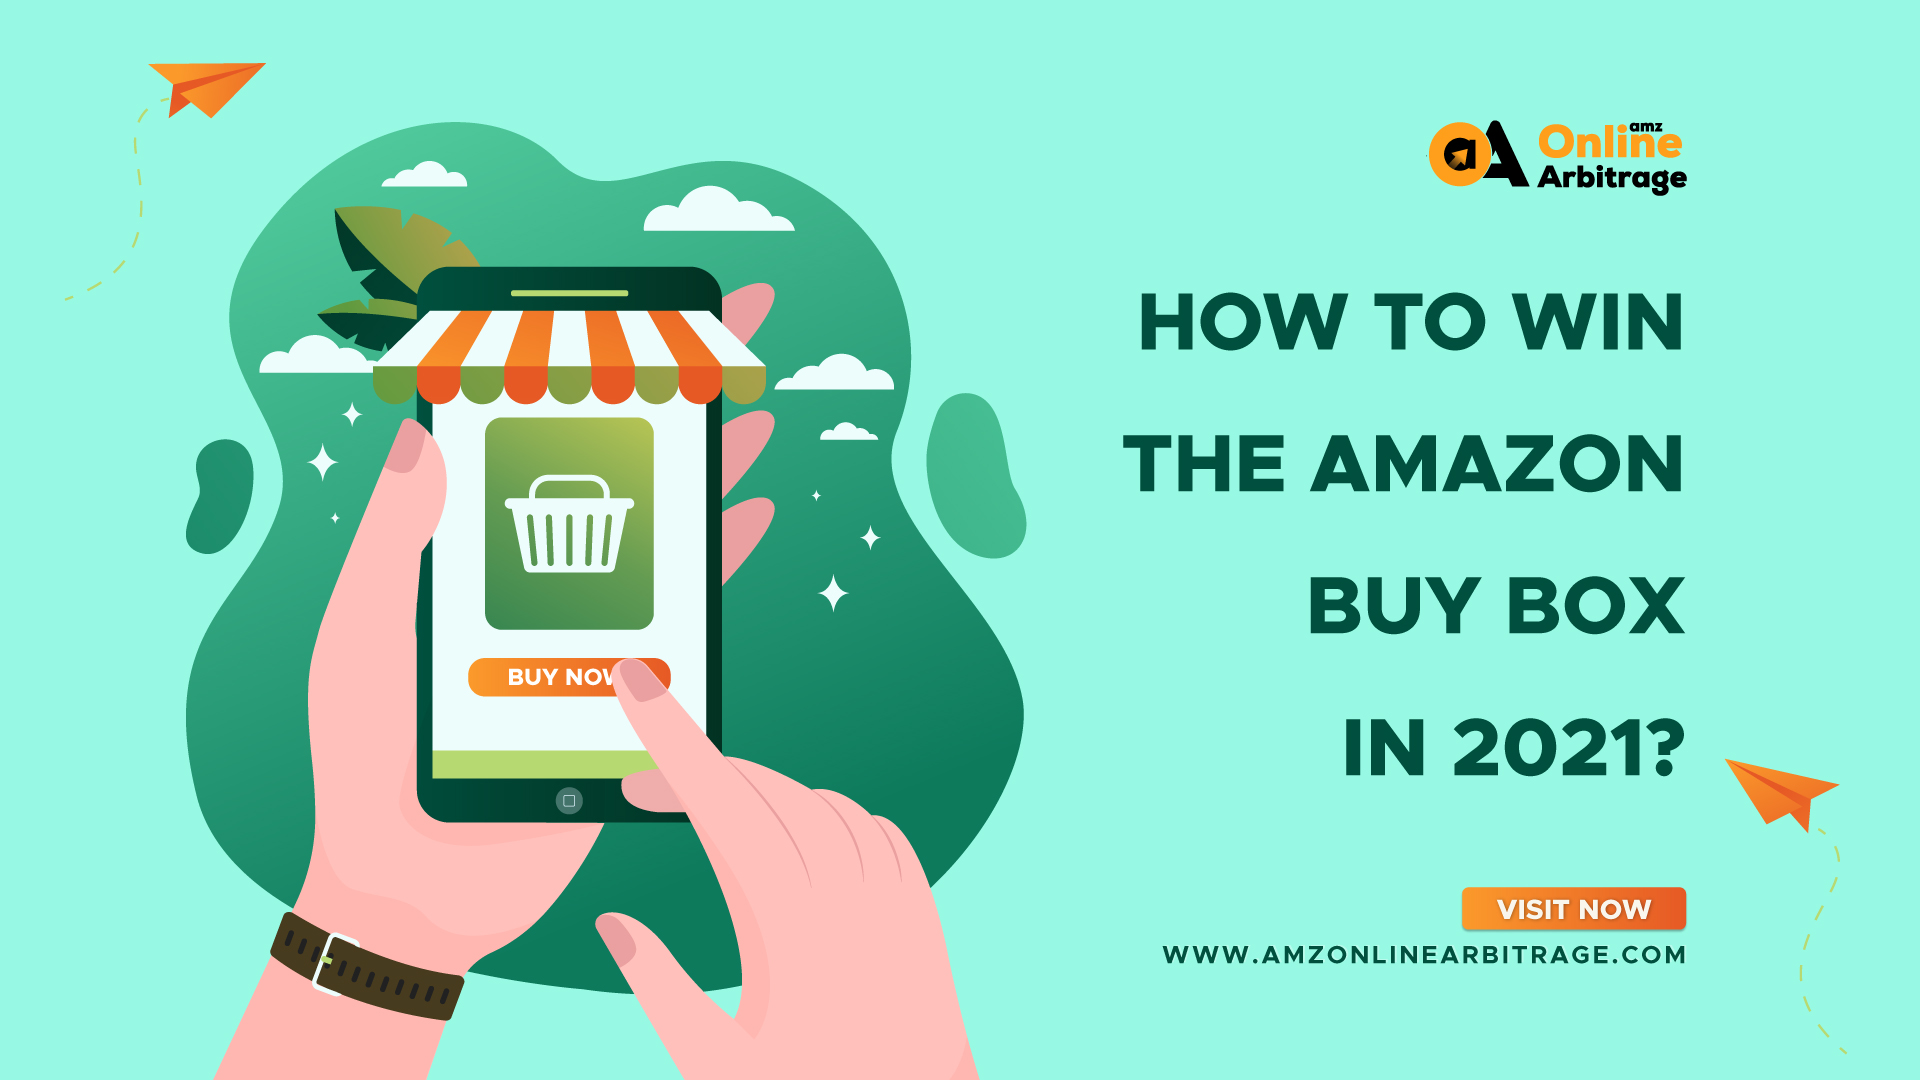 HOW TO WIN THE AMAZON BUY BOX IN 2021?